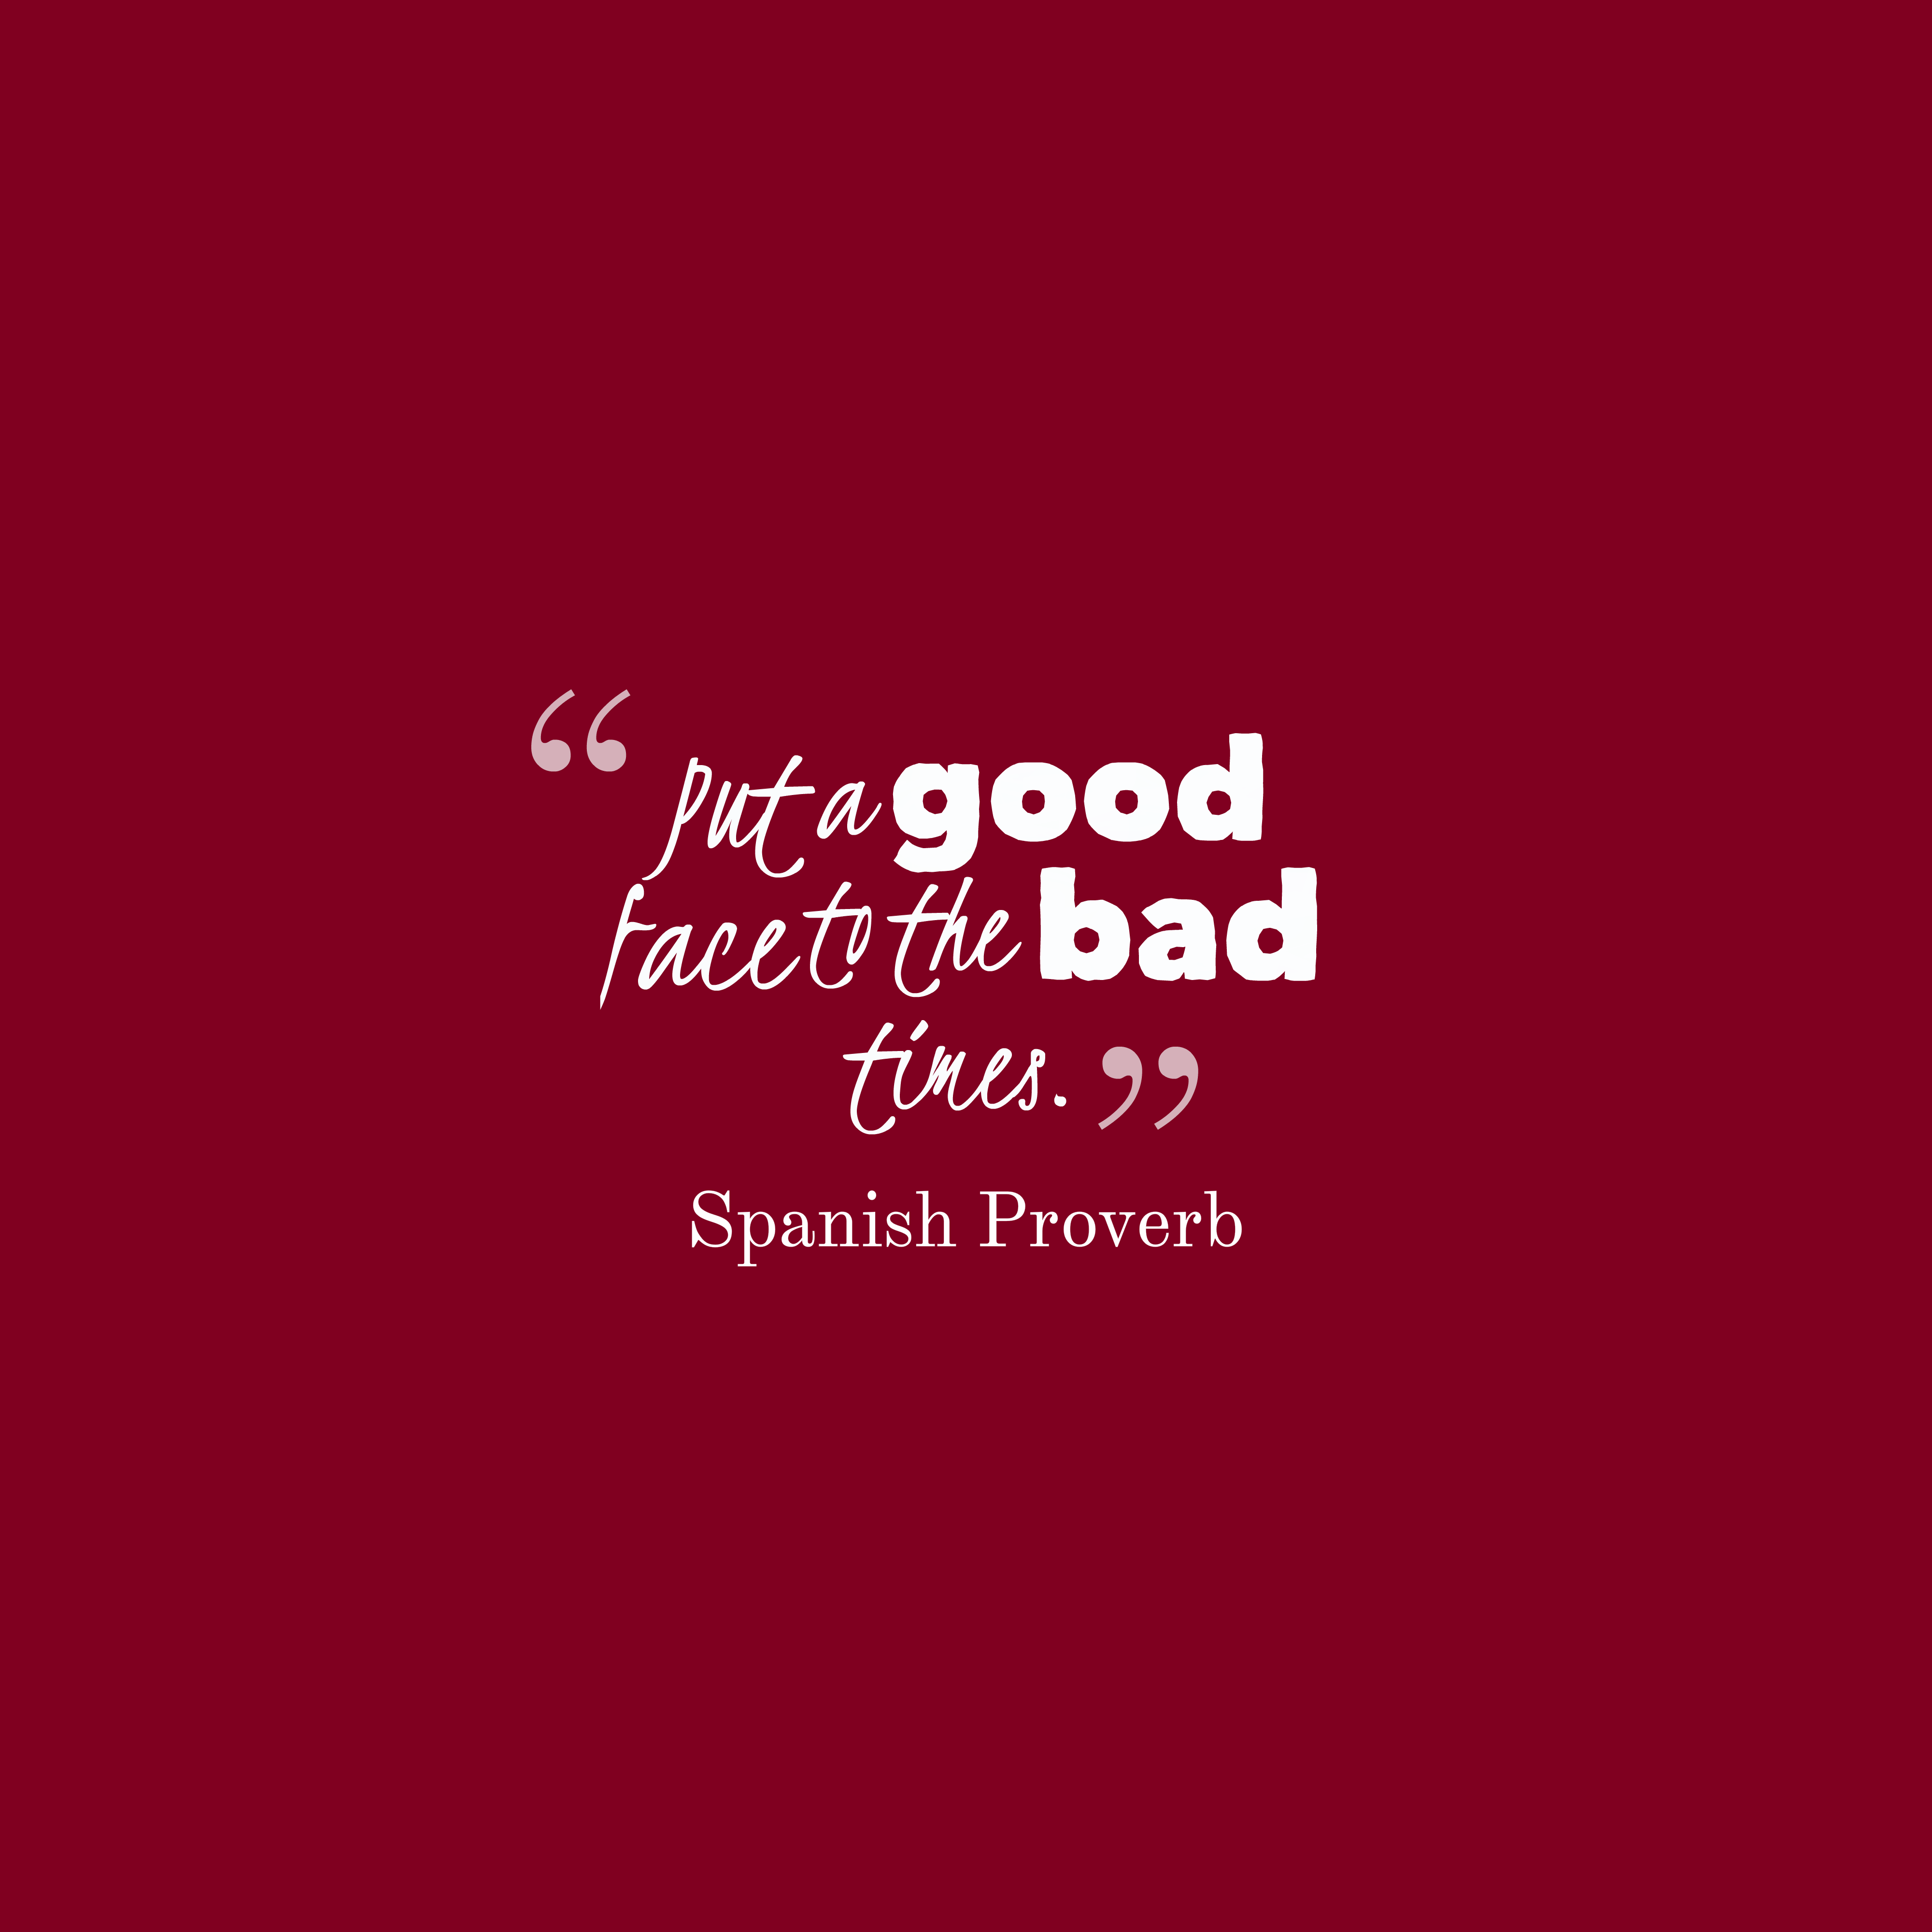 Spanish Wisdom About Situations